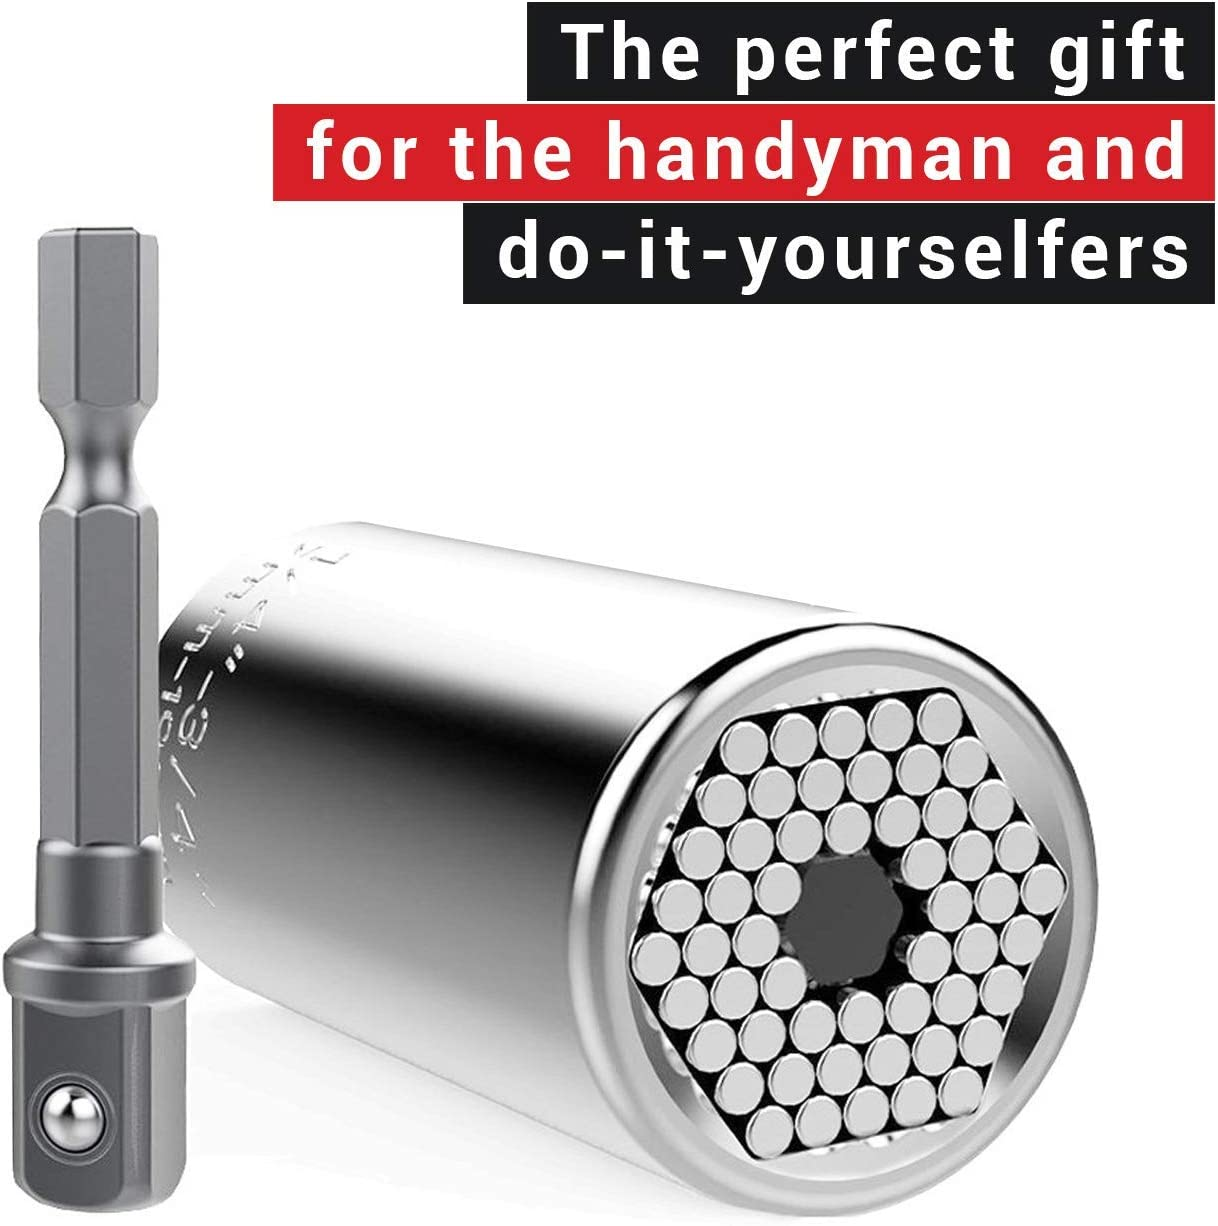 New Universal Hex Nut Socket Wrench Grip Tool 7-19mm Attachment For Power Drill